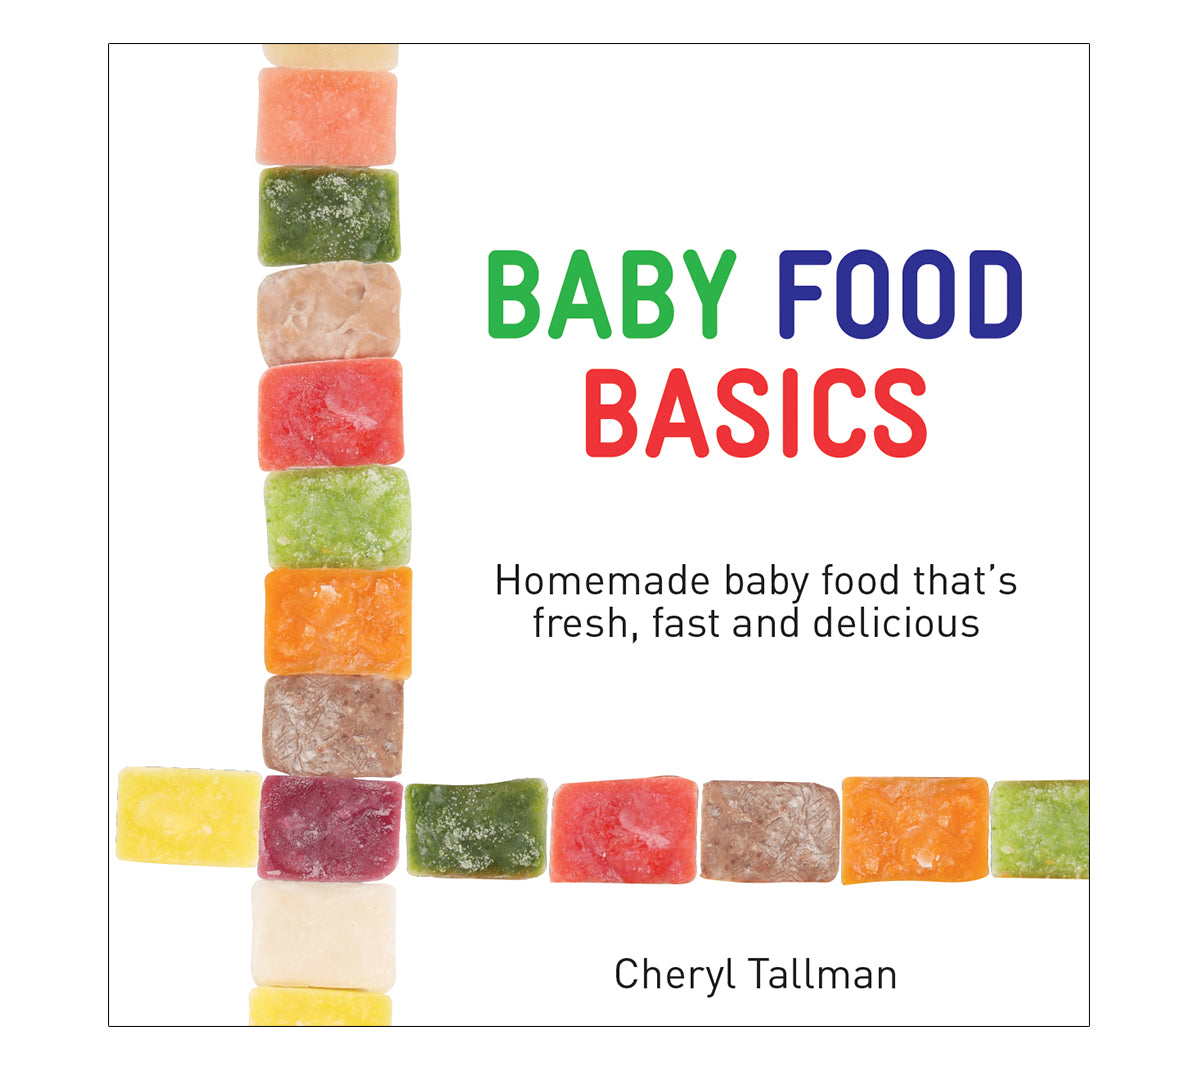 Baby Food Basics Cookbook